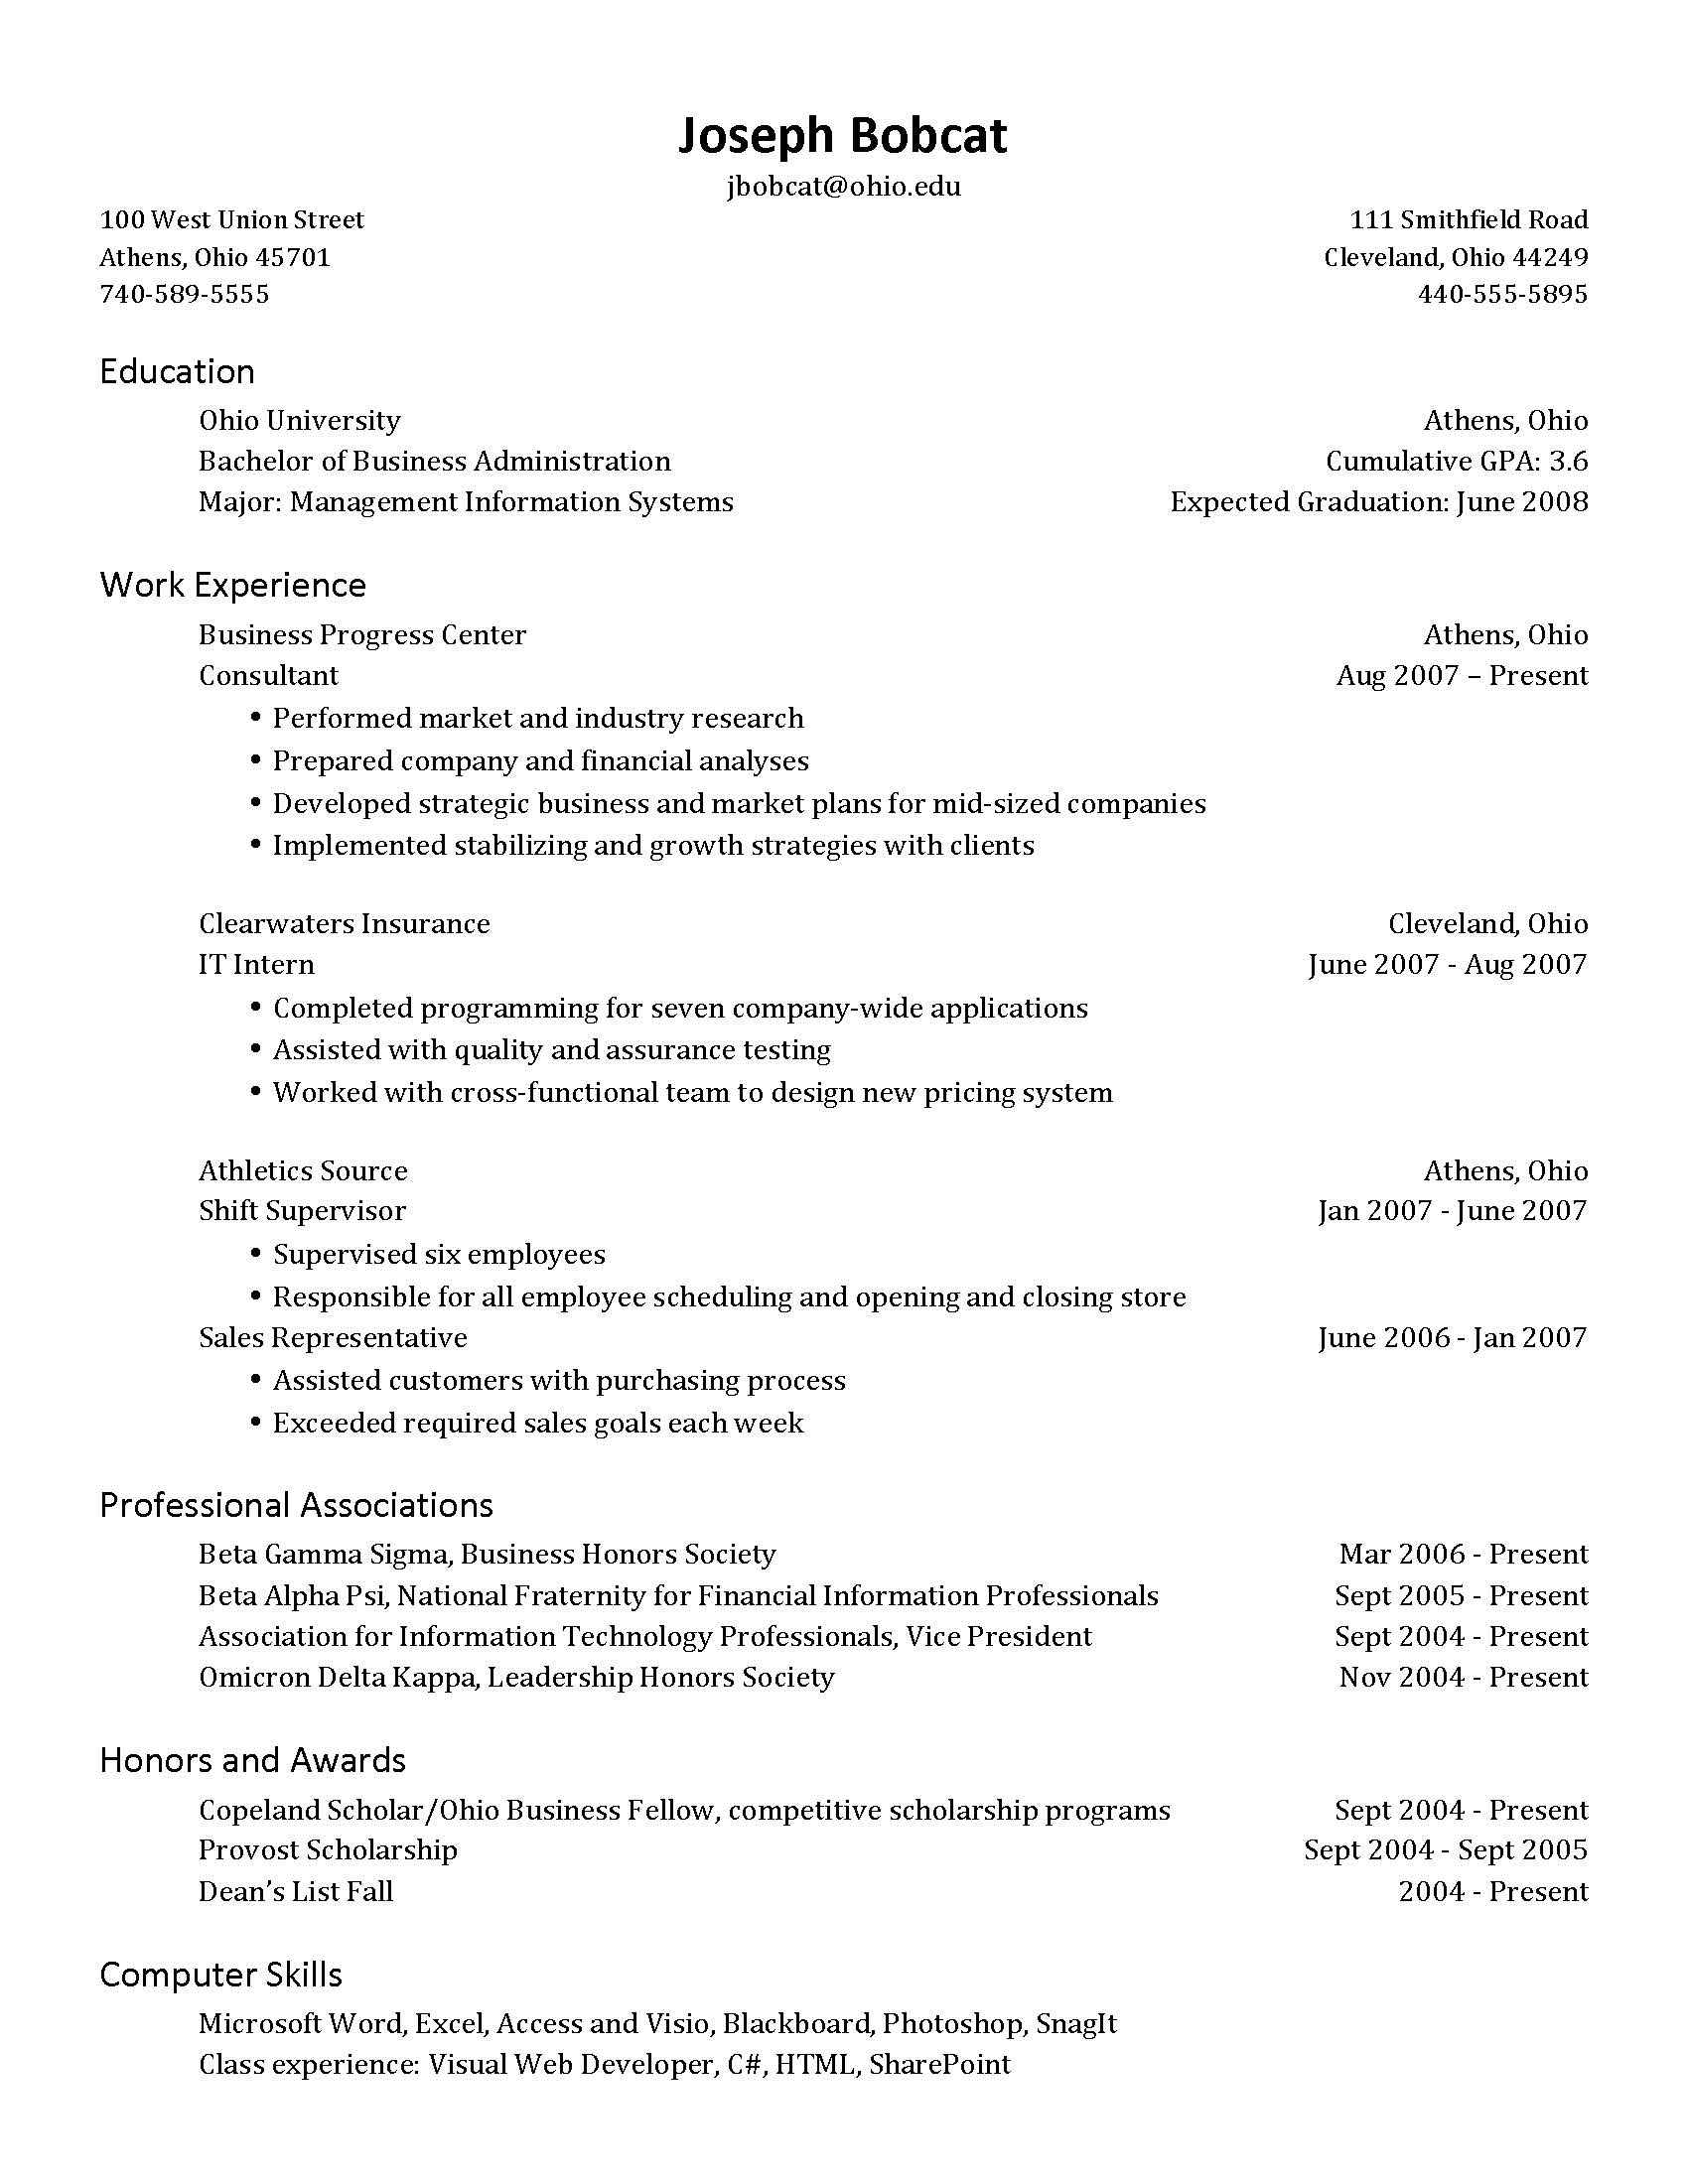 l2 assignment resume design